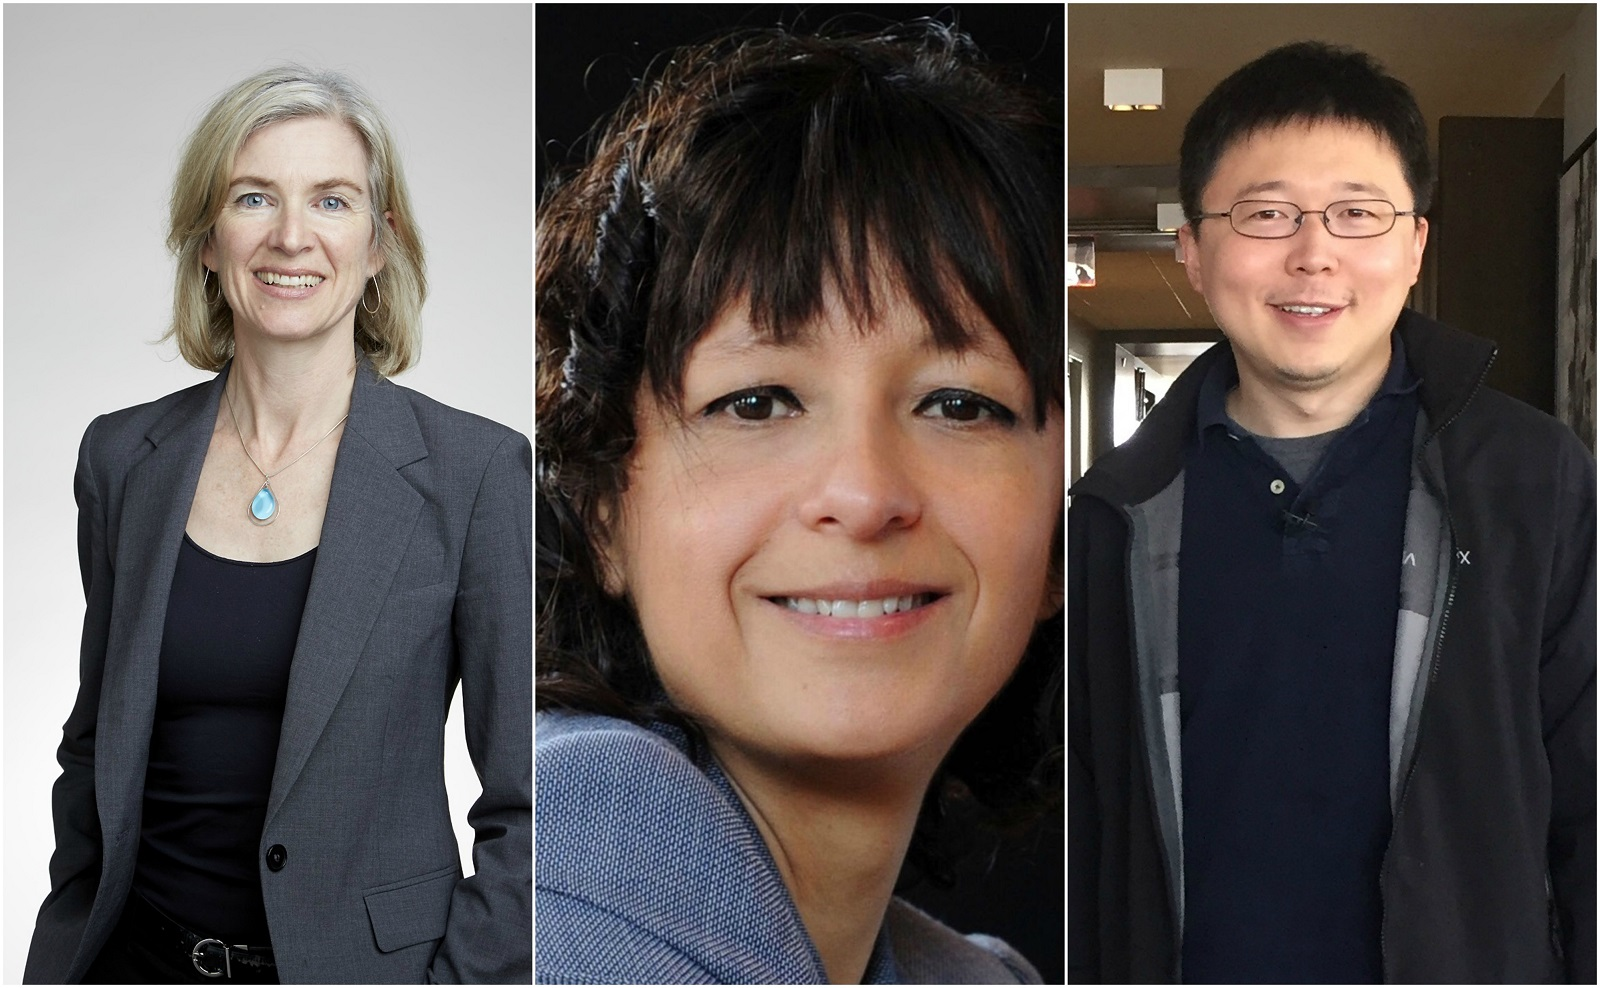 CRISPR pioneers (from left) Professors Jennifer Doudna, Emmanuelle Charpentier, and Feng Zhang, who spoke highly of the Skoltech/Visual Science video. Photos: Wikipedia.